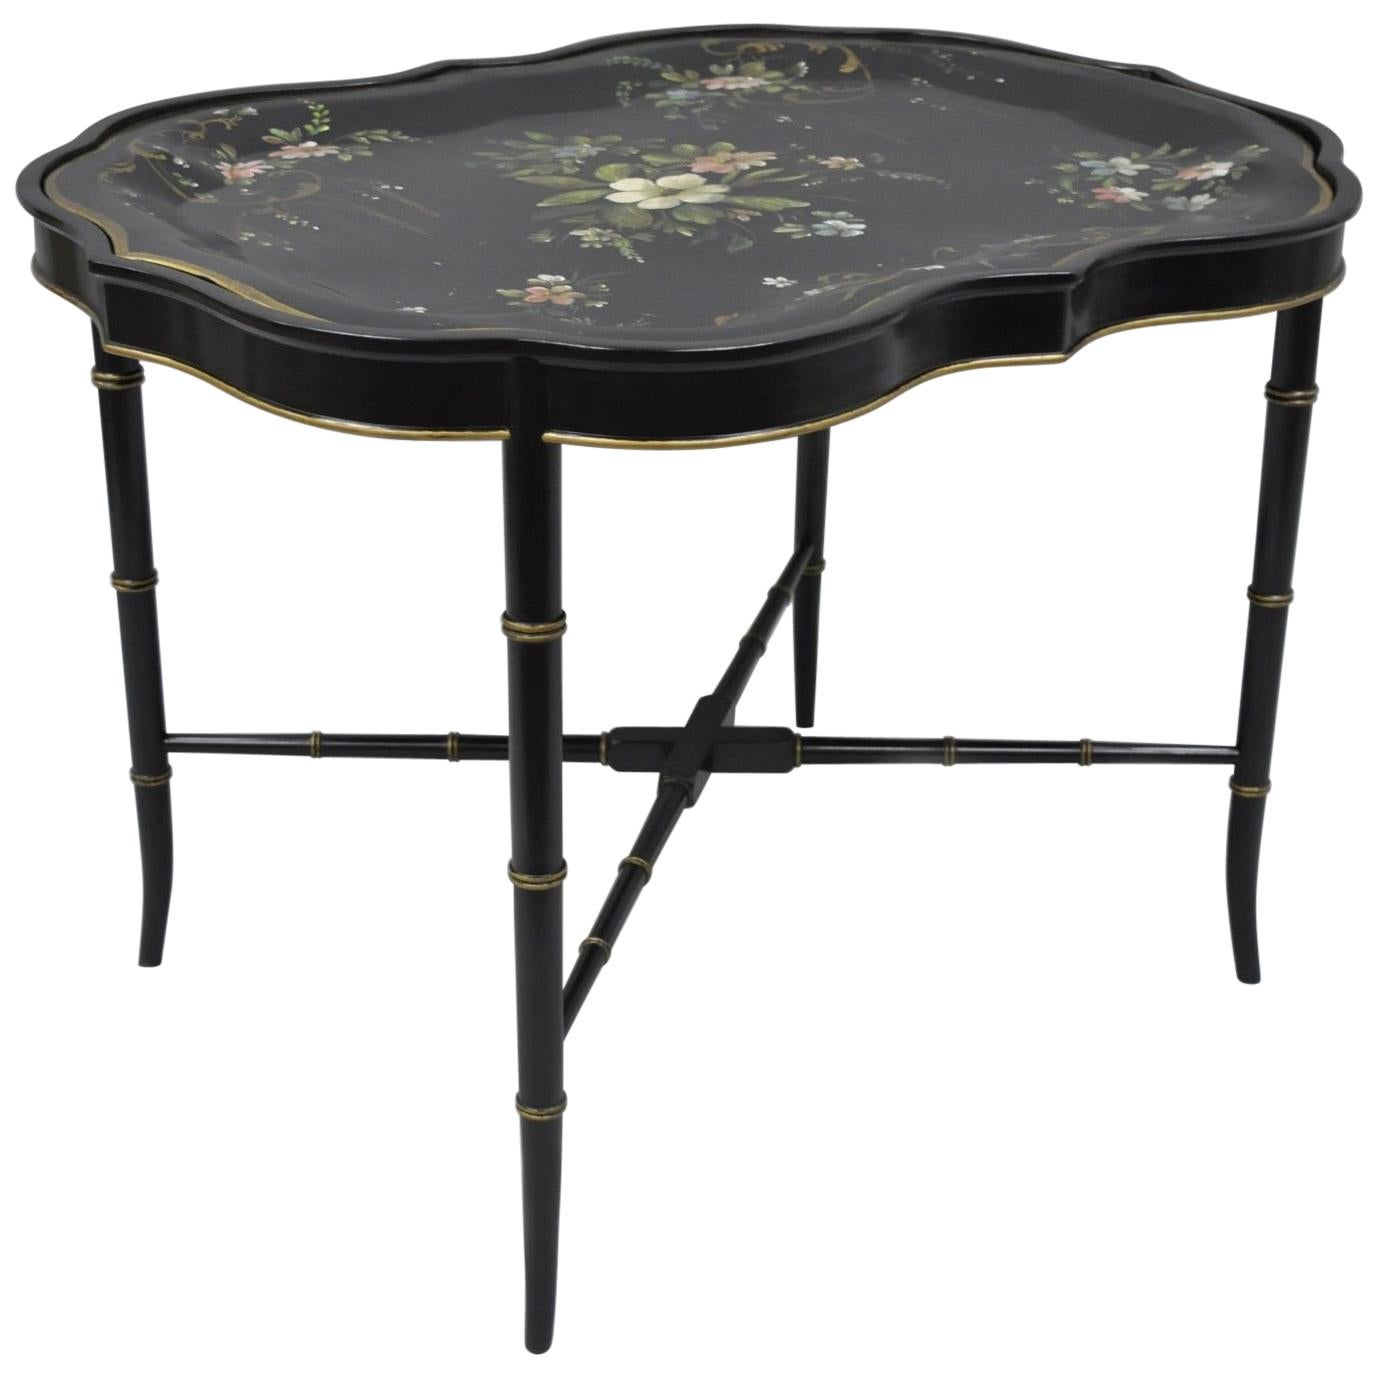 Scalloped Tole Metal Serving Tray Coffee Tea Table Black